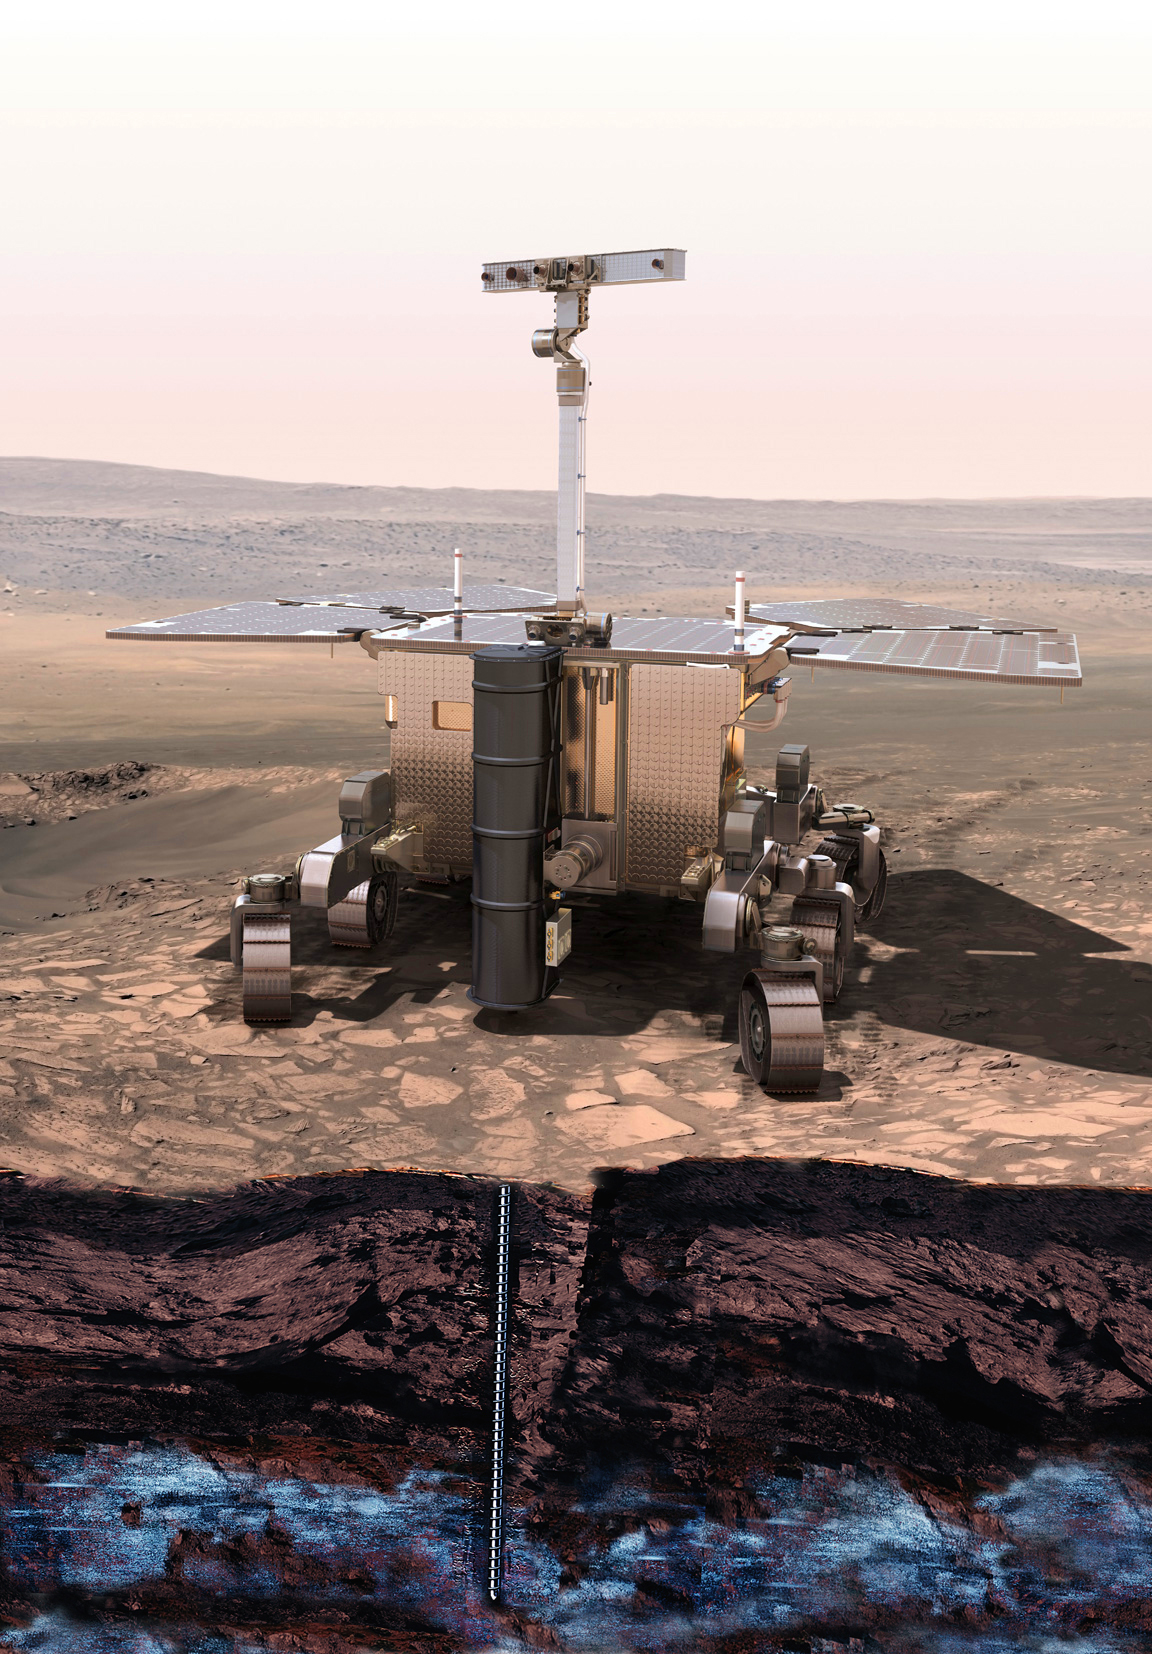 Space in Images - 2013 - 03 - ExoMars rover